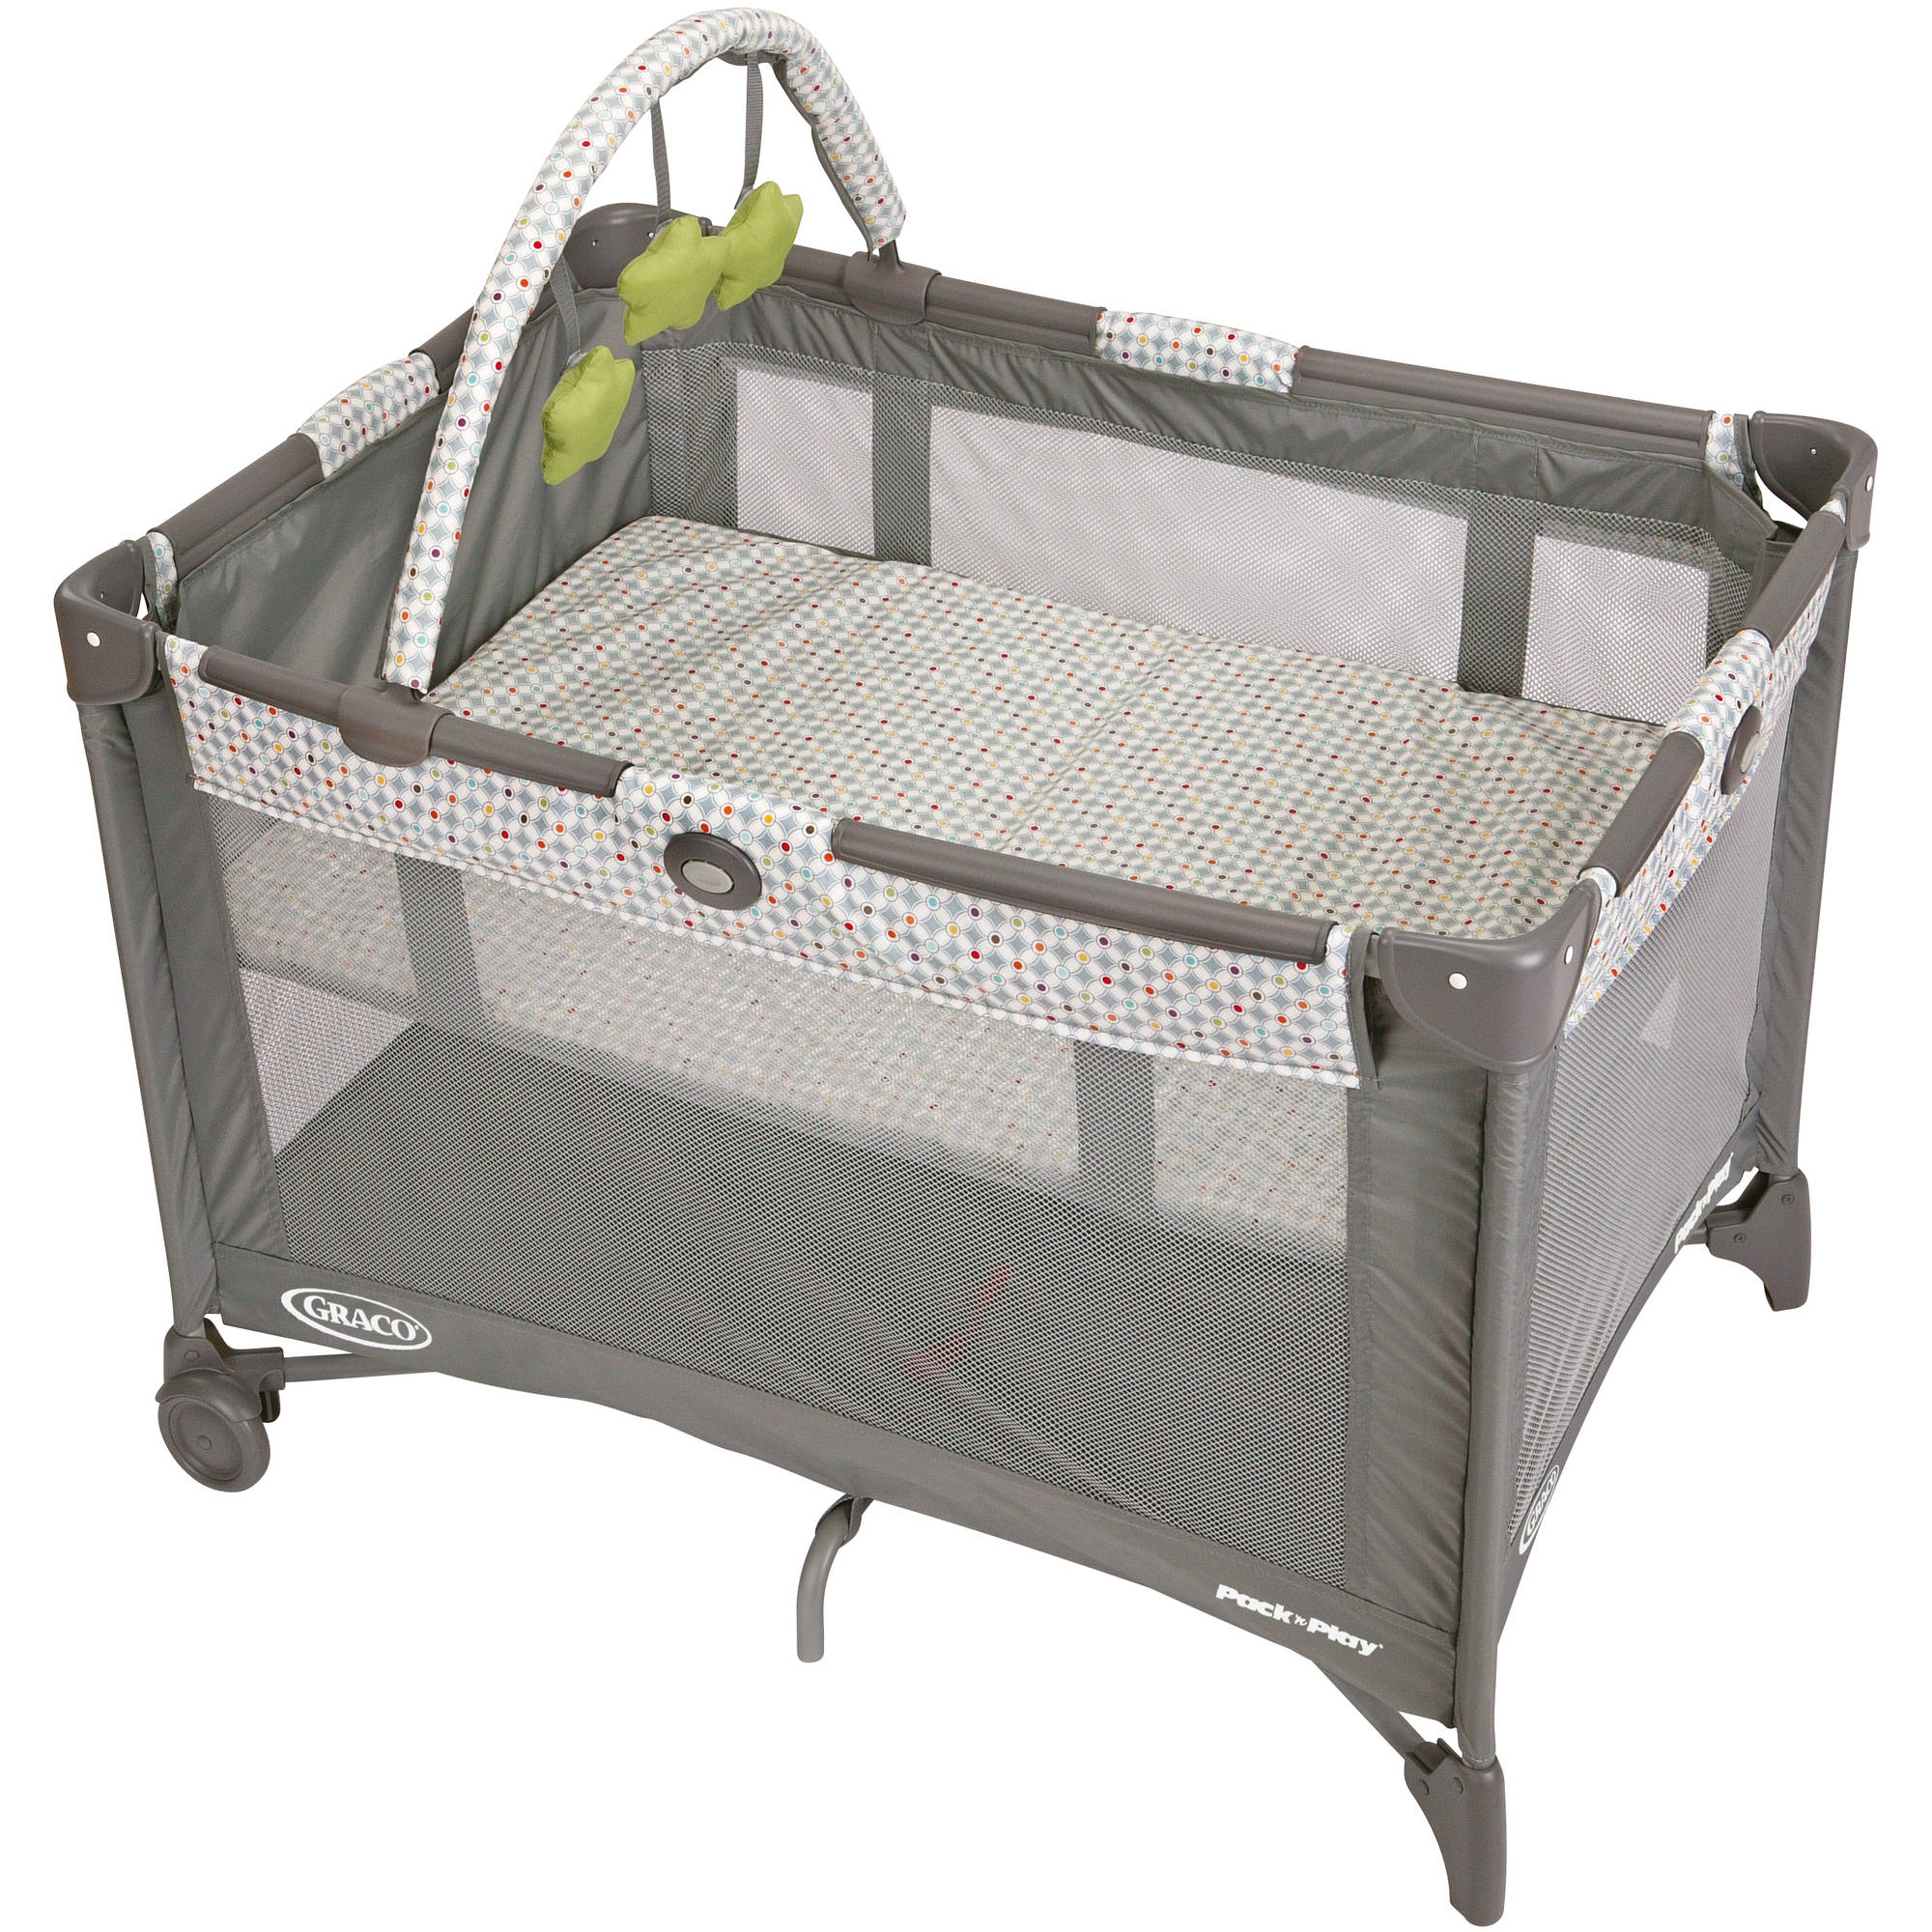 Graco Pack 'N Play with Automatic Folding Feet Playard, Pasadena